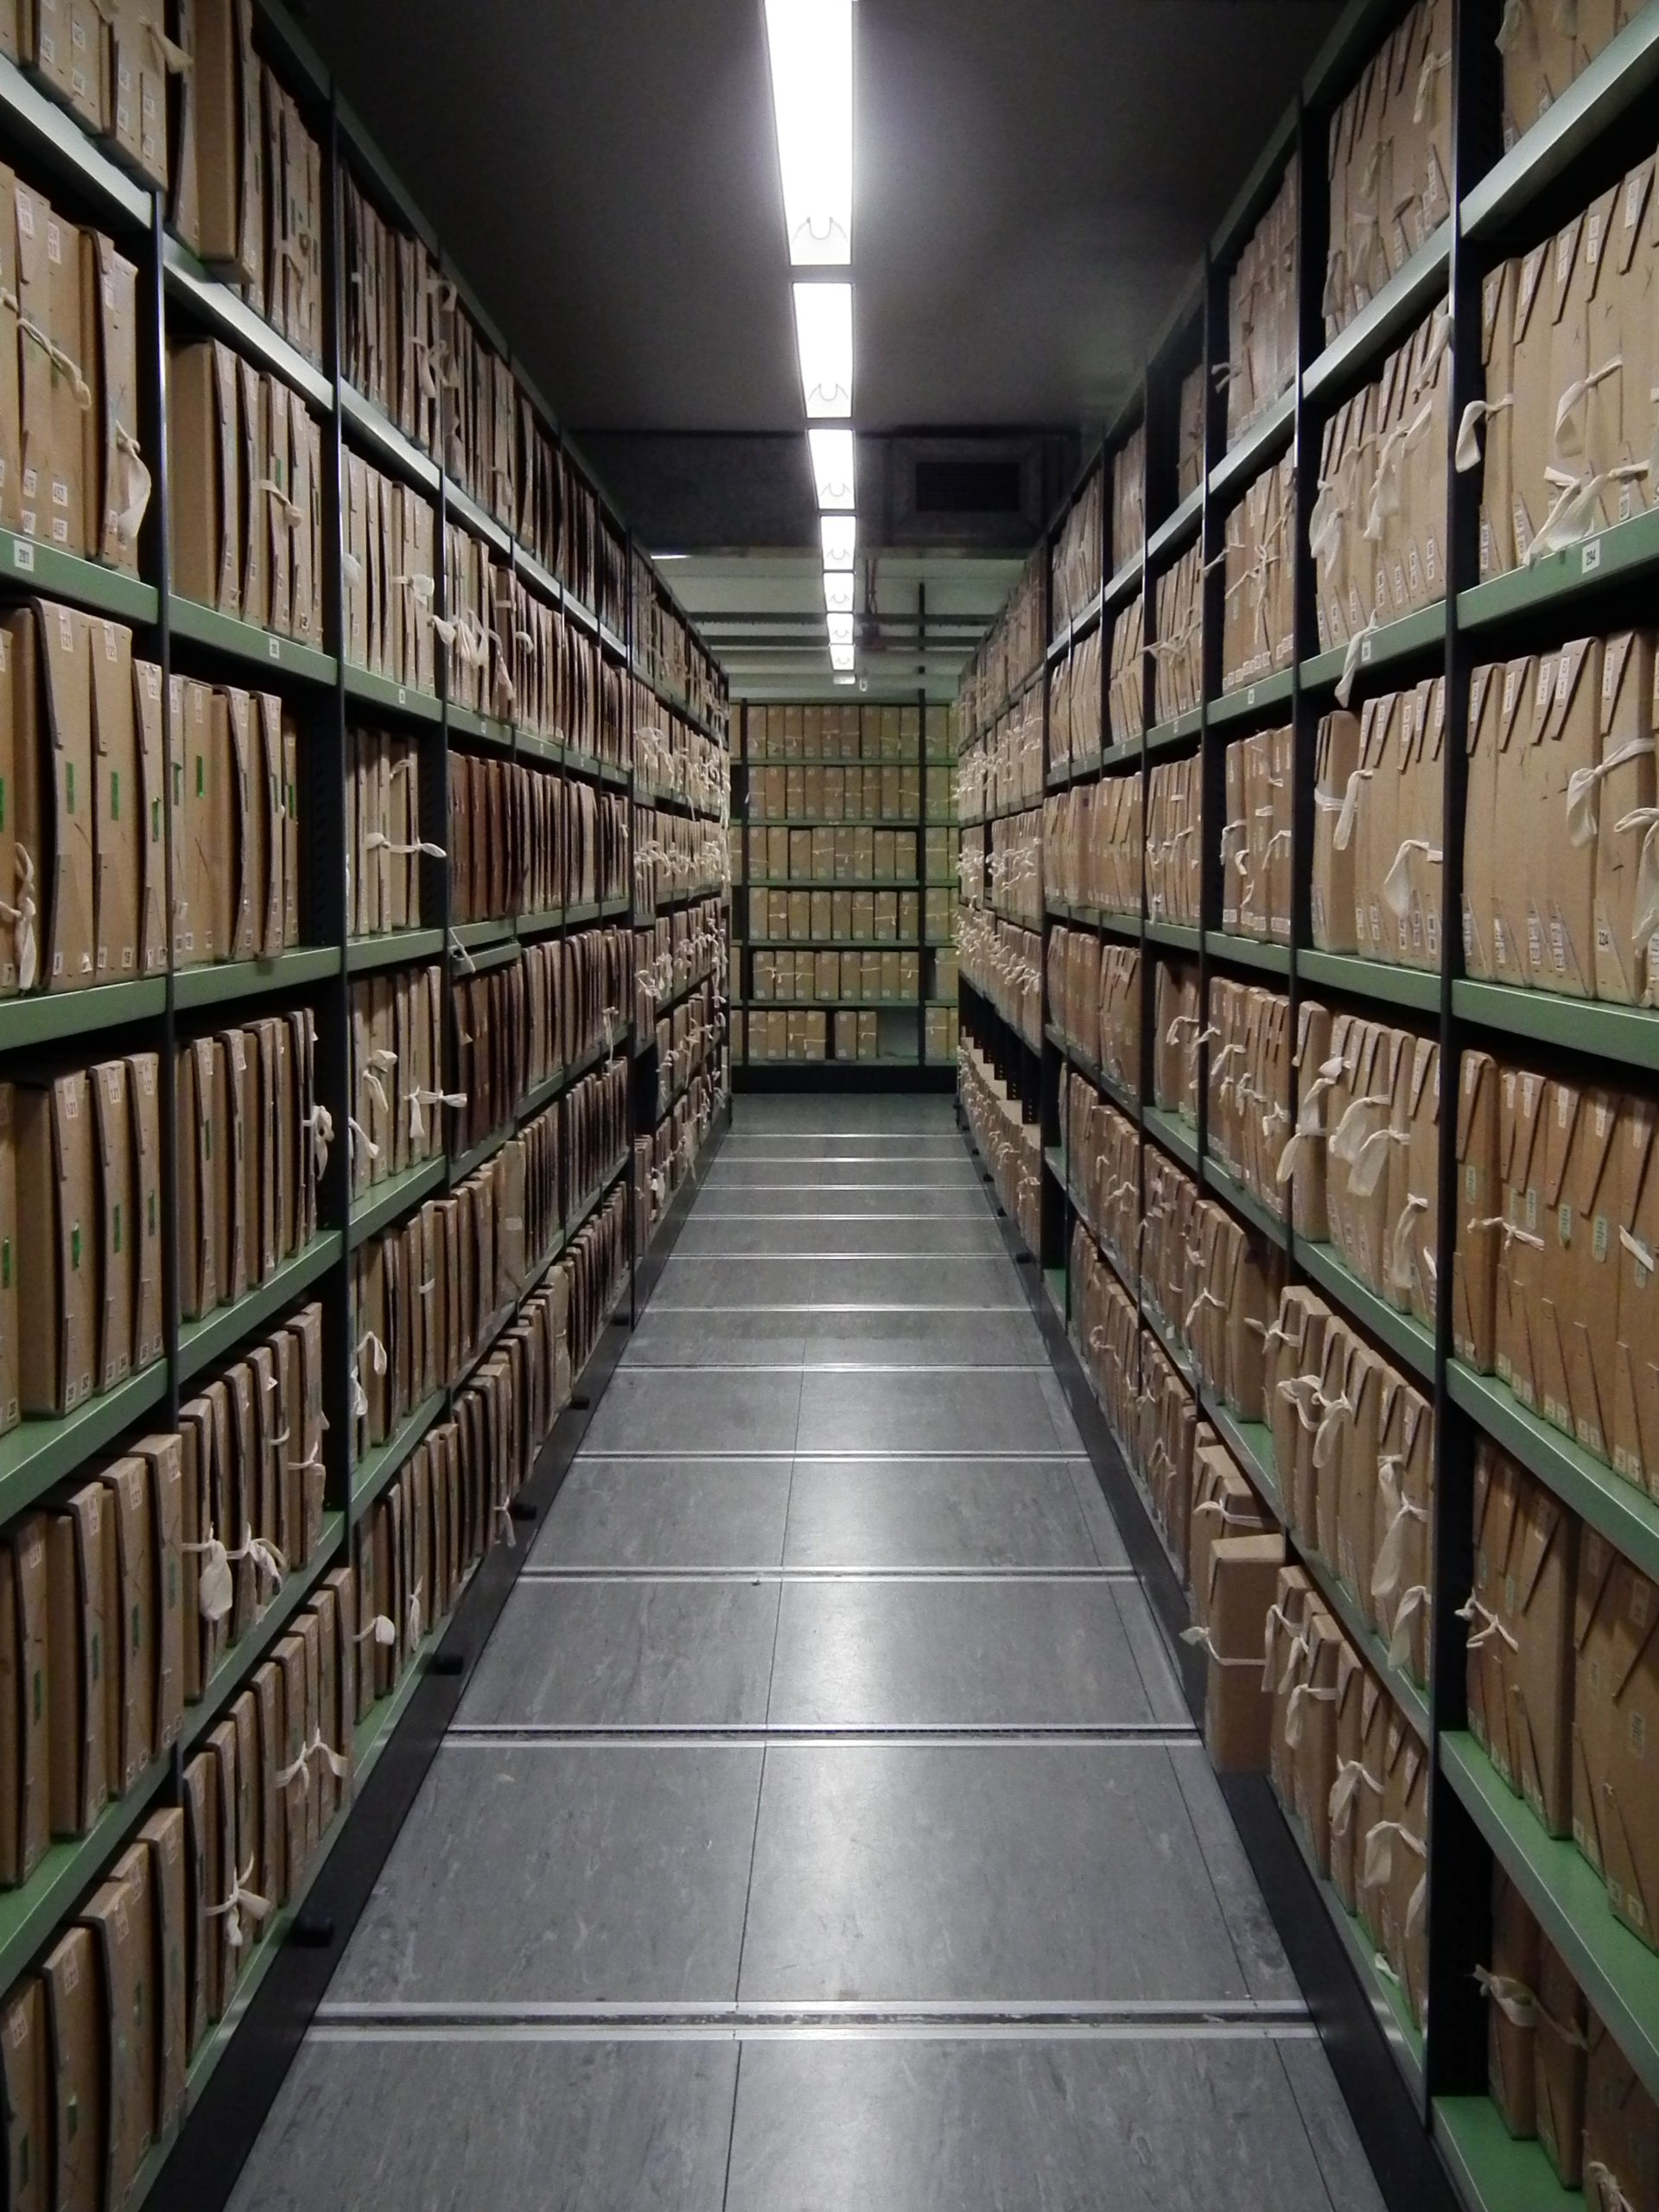 A_corridor_of_files_at_The_National_Archives_UK[1]